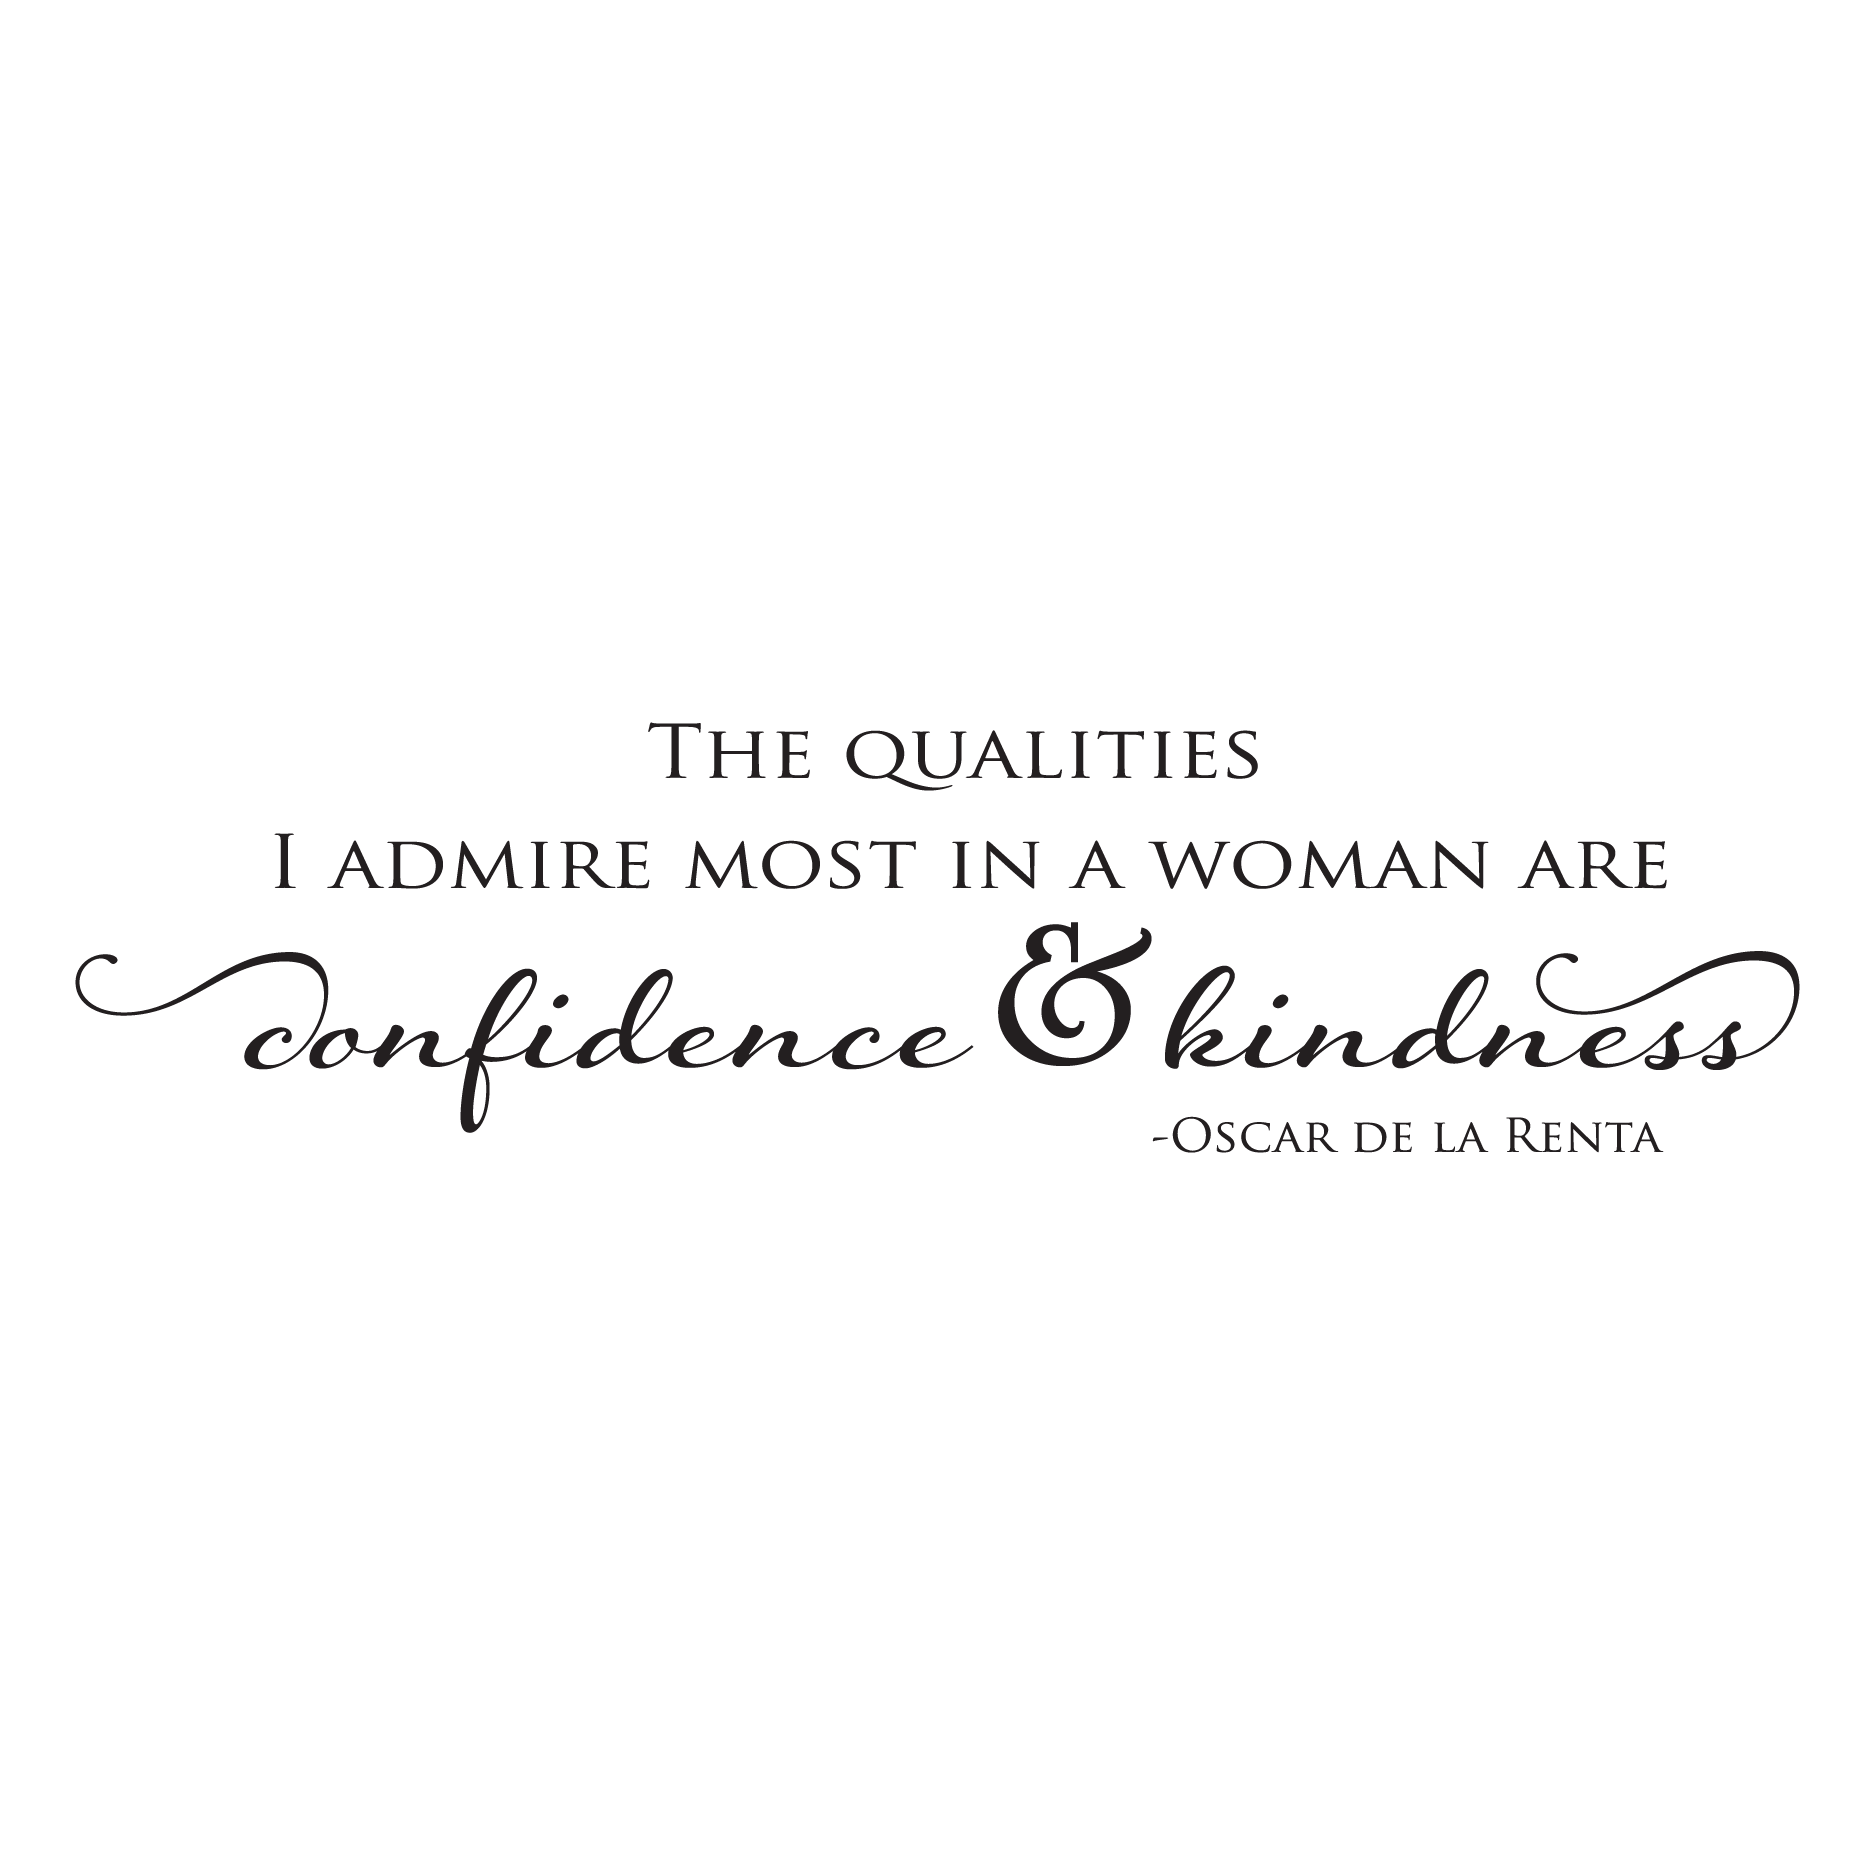 Women Quotes In The Kitchen: The Qualities I Admire Most Wall Quotes™ Decal